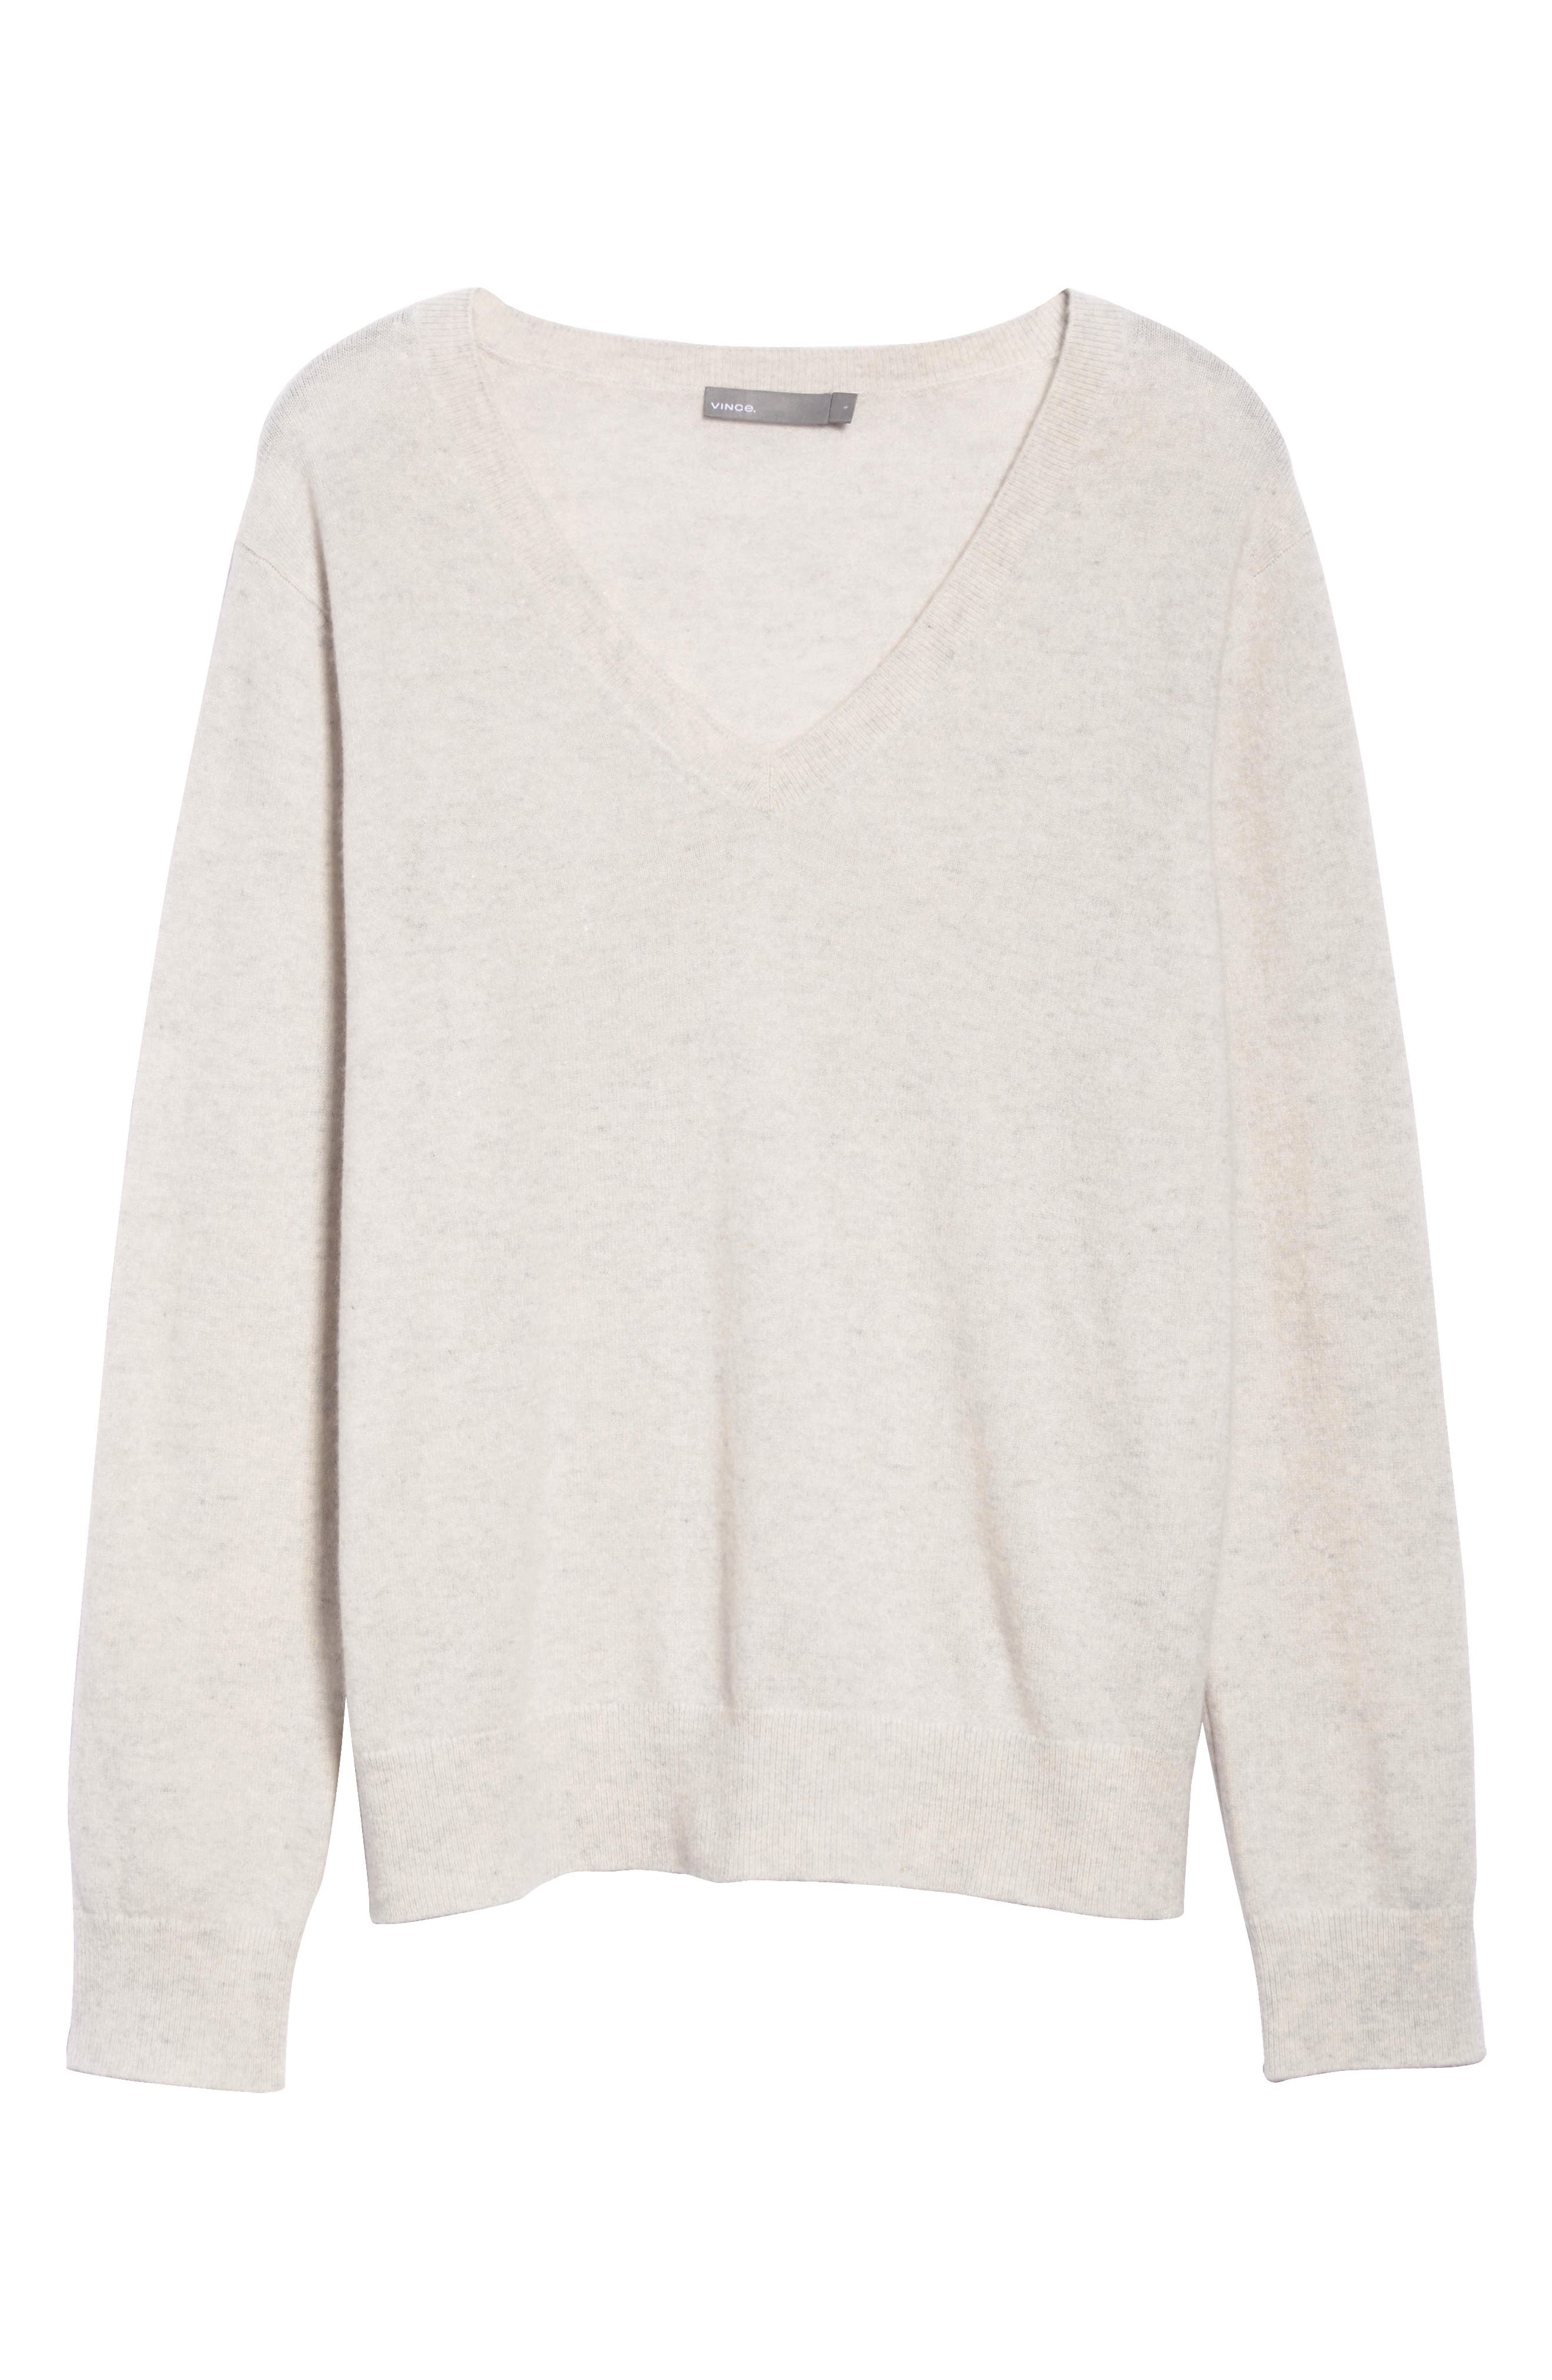 VINCE, Weekend V-Neck Cashmere Sweater, Alternate thumbnail 6, color, HEATHER WHITE